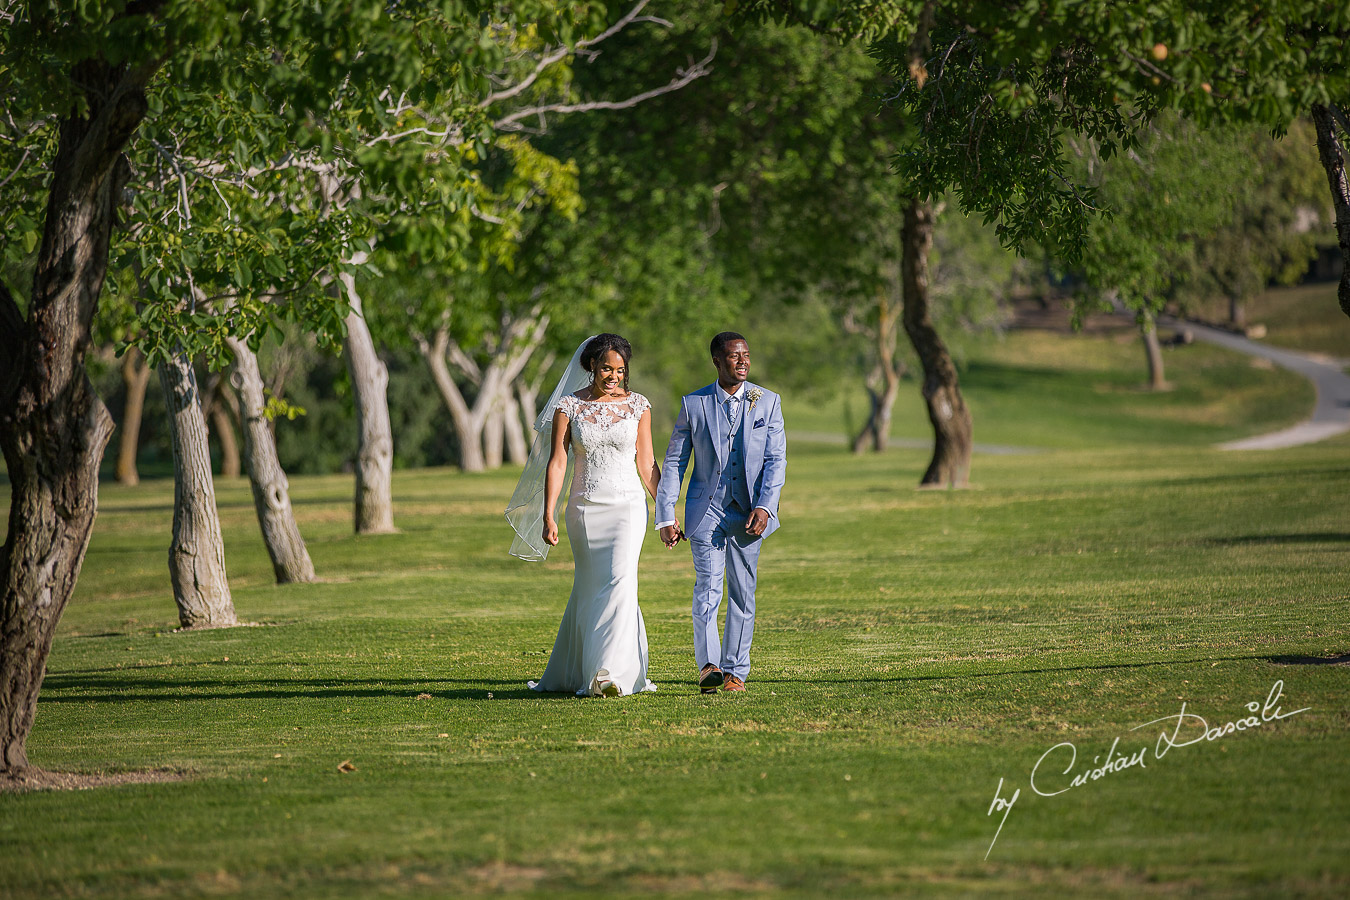 Bride and groom mini-photo session captured at a wedding at Minthis Hills in Cyprus, by Cristian Dascalu.